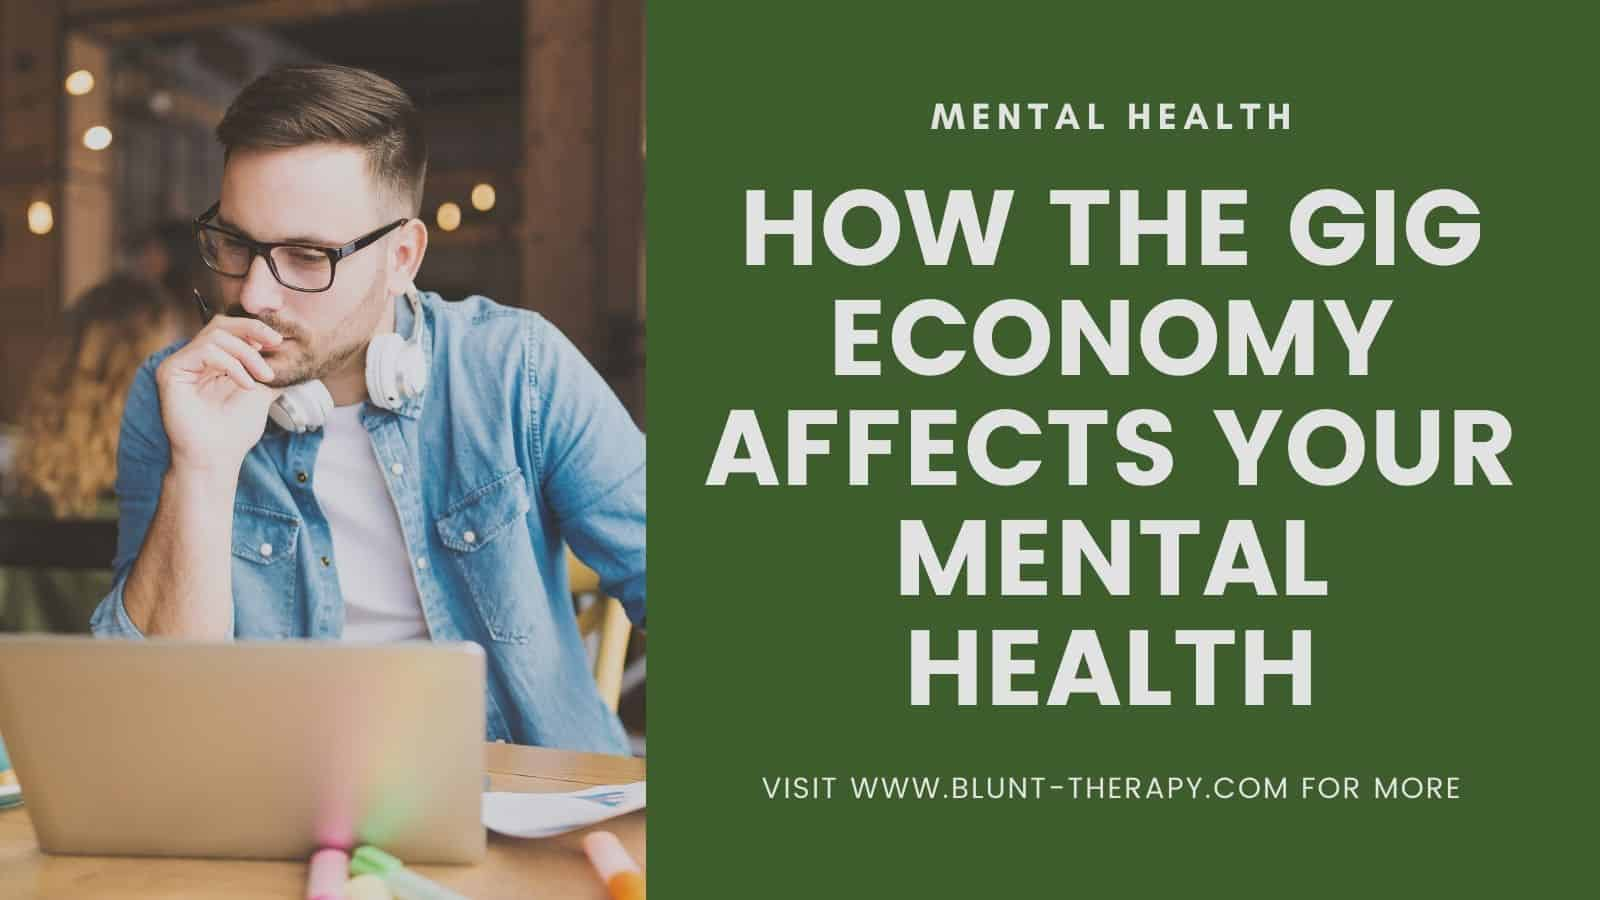 How The Gig Economy Affects Your Mental Health